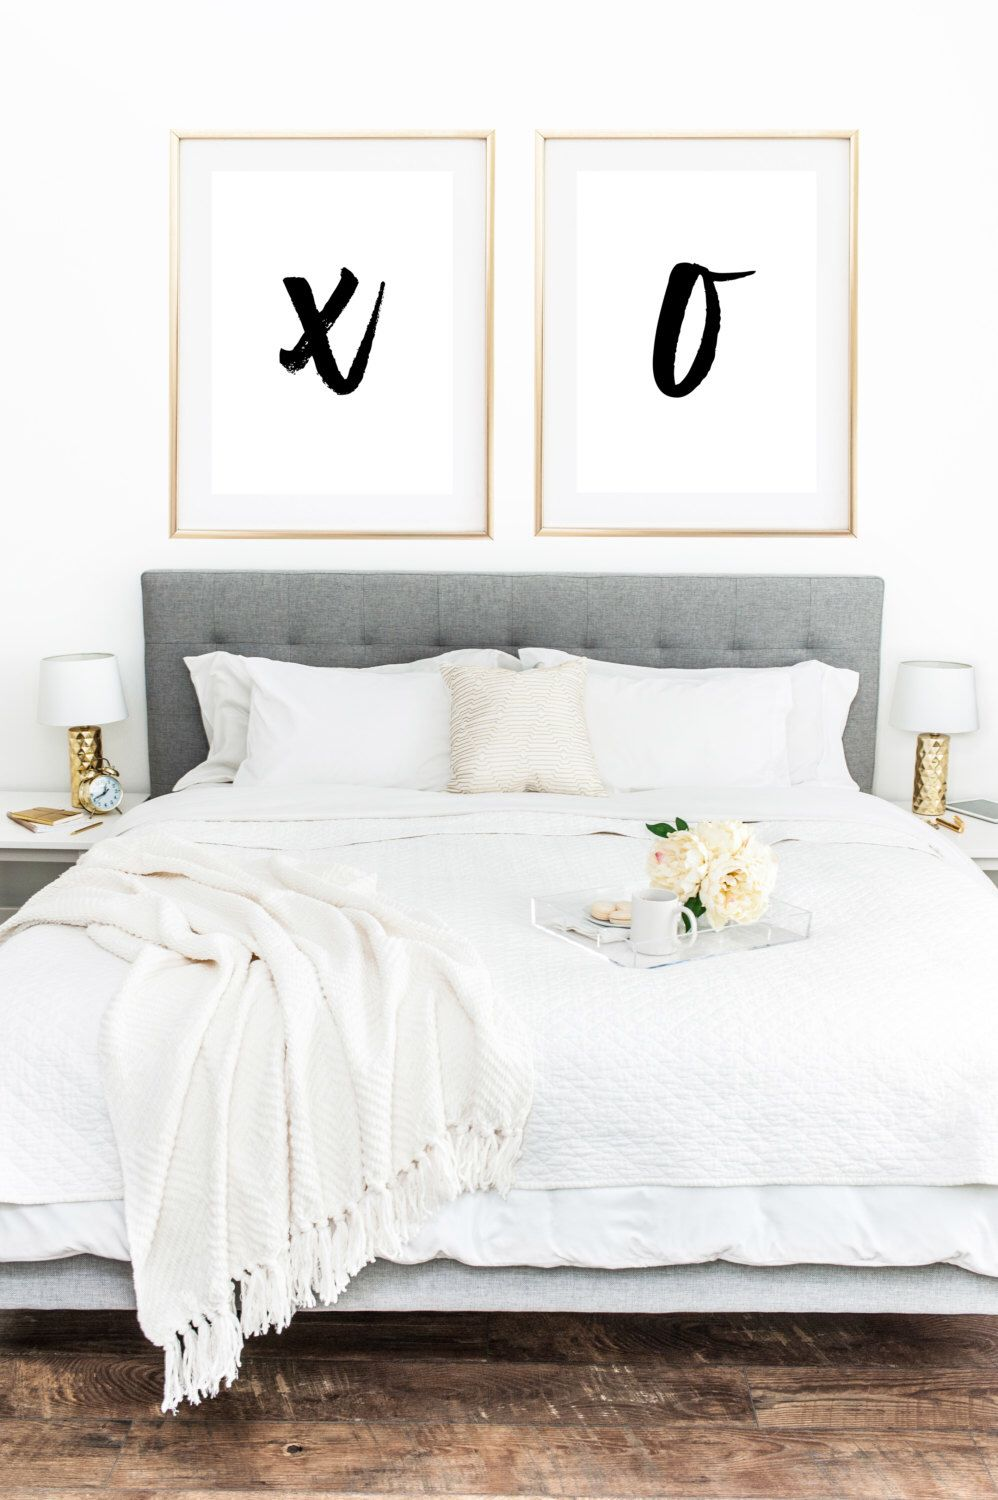 XOXO Wall Decor would look so cute in Evolve Auburn Apartment